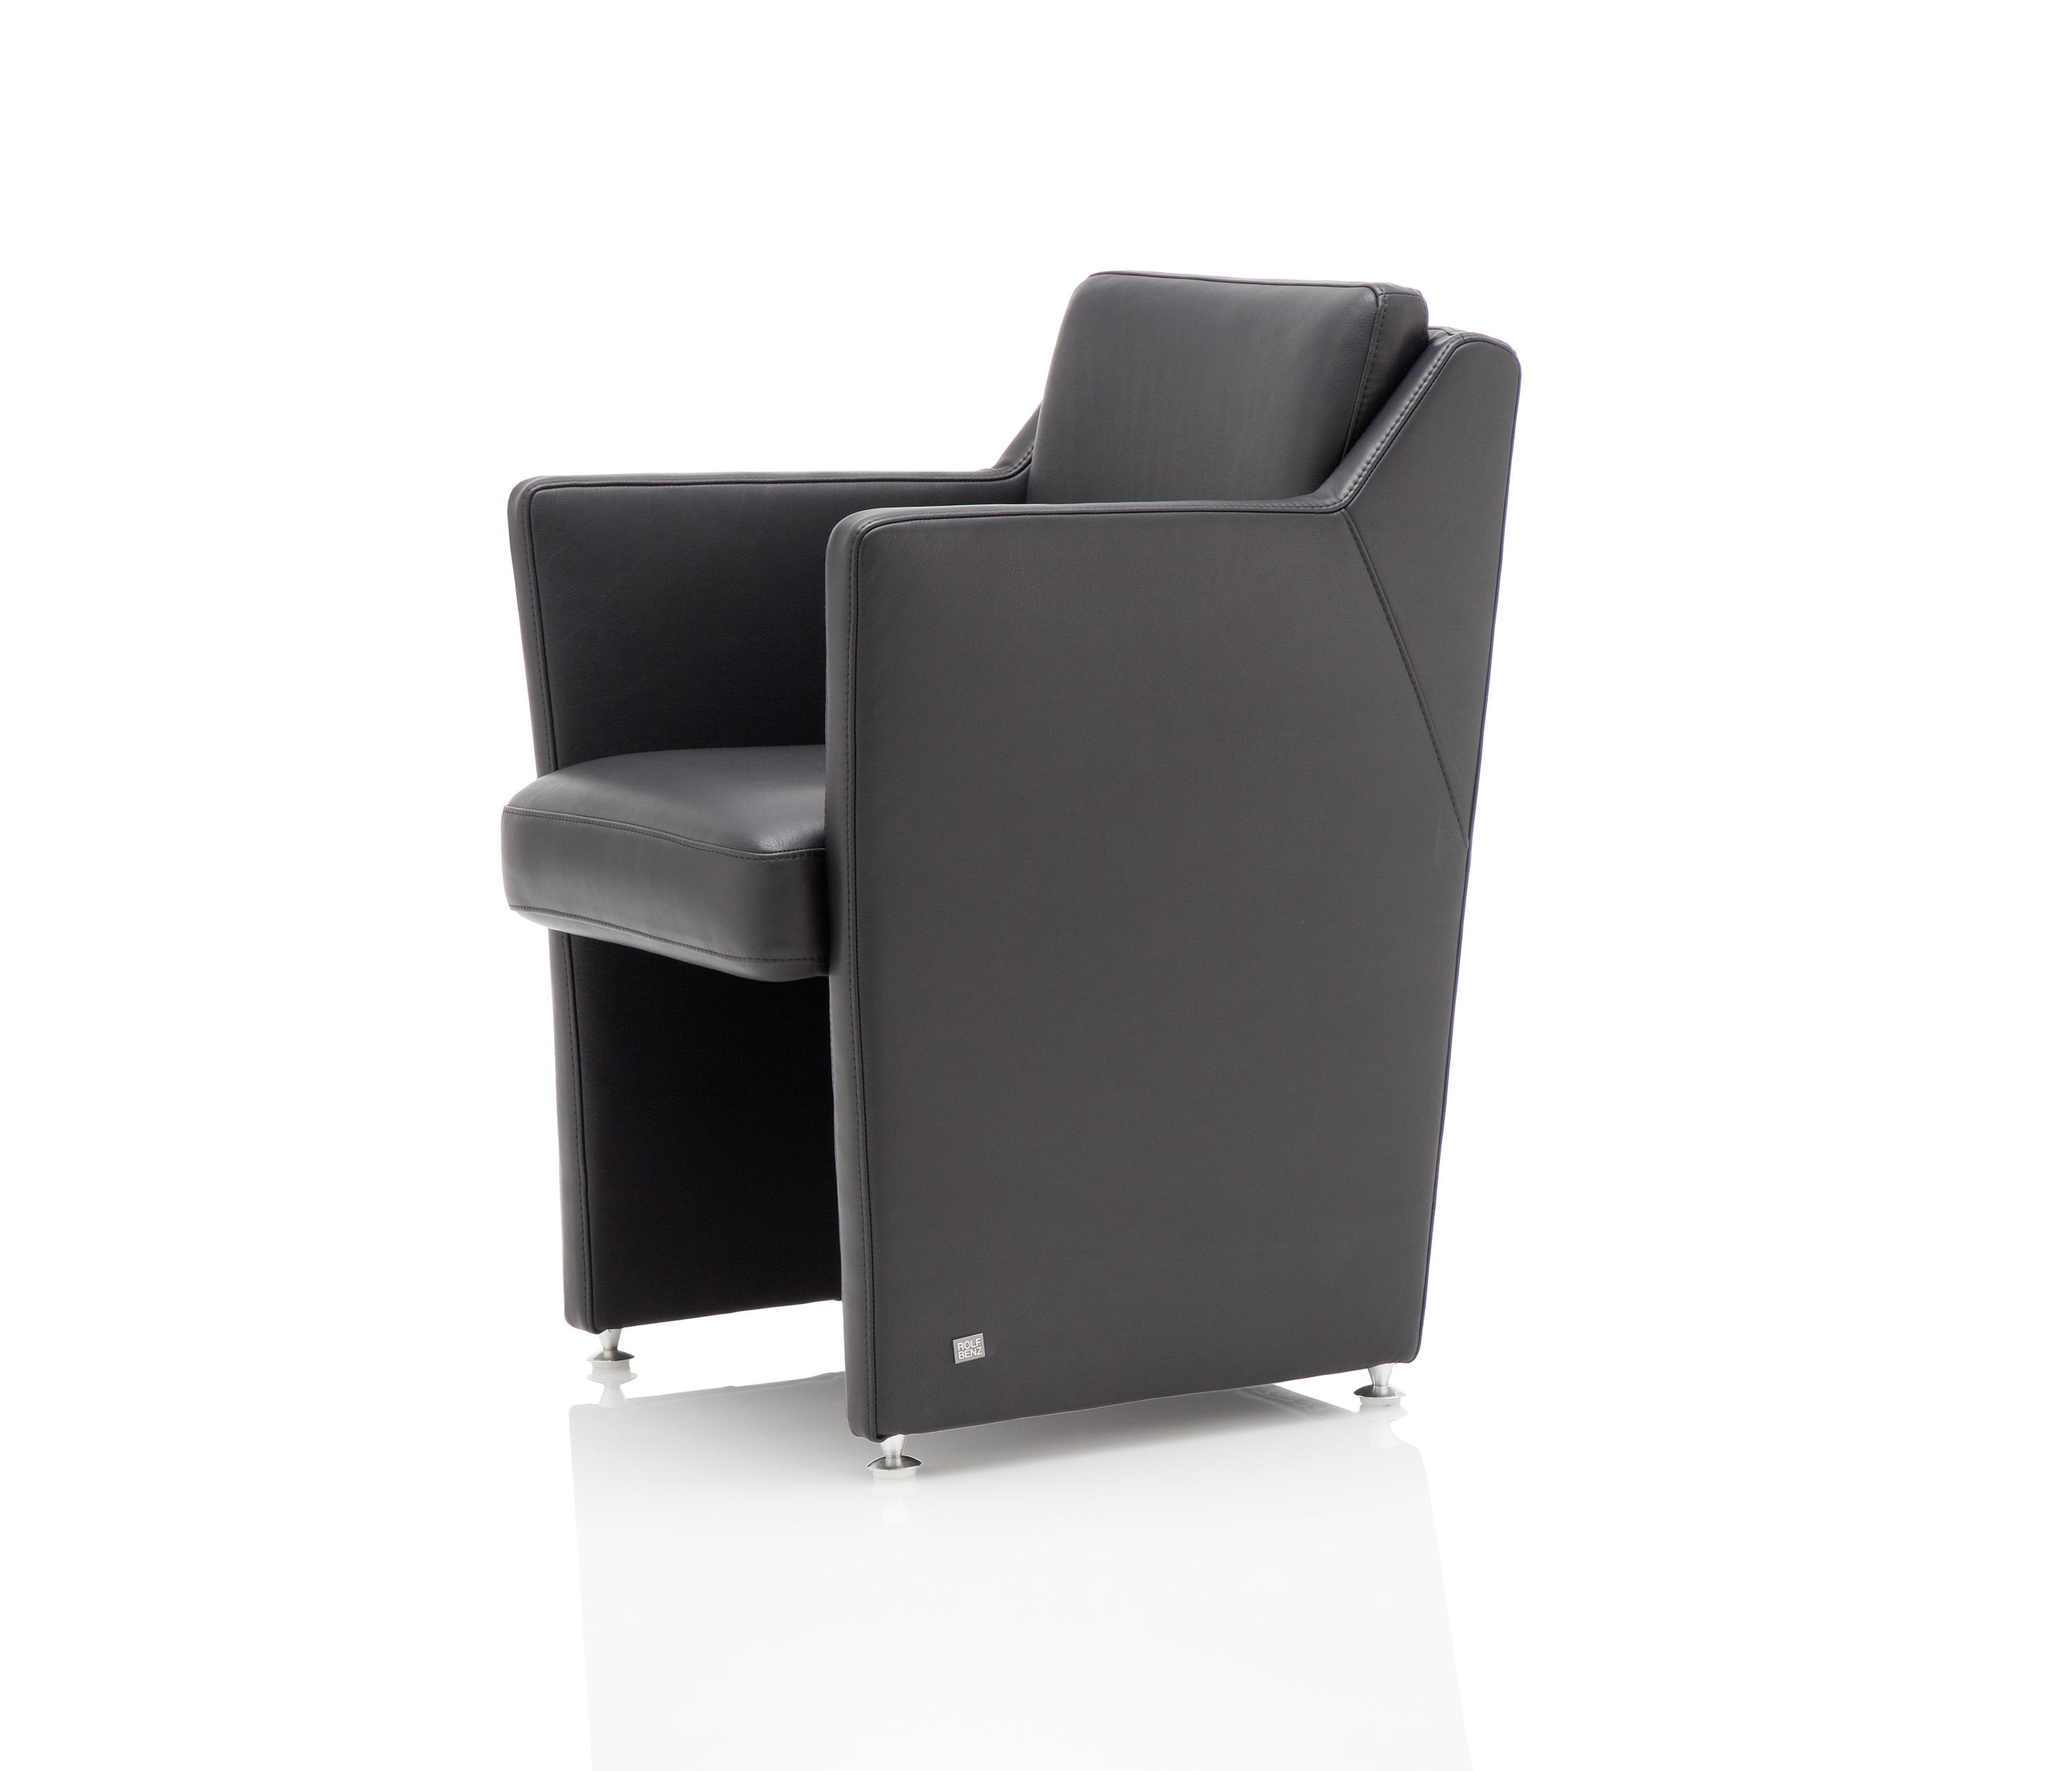 rolf benz 7100 conference chairs from rolf benz architonic. Black Bedroom Furniture Sets. Home Design Ideas